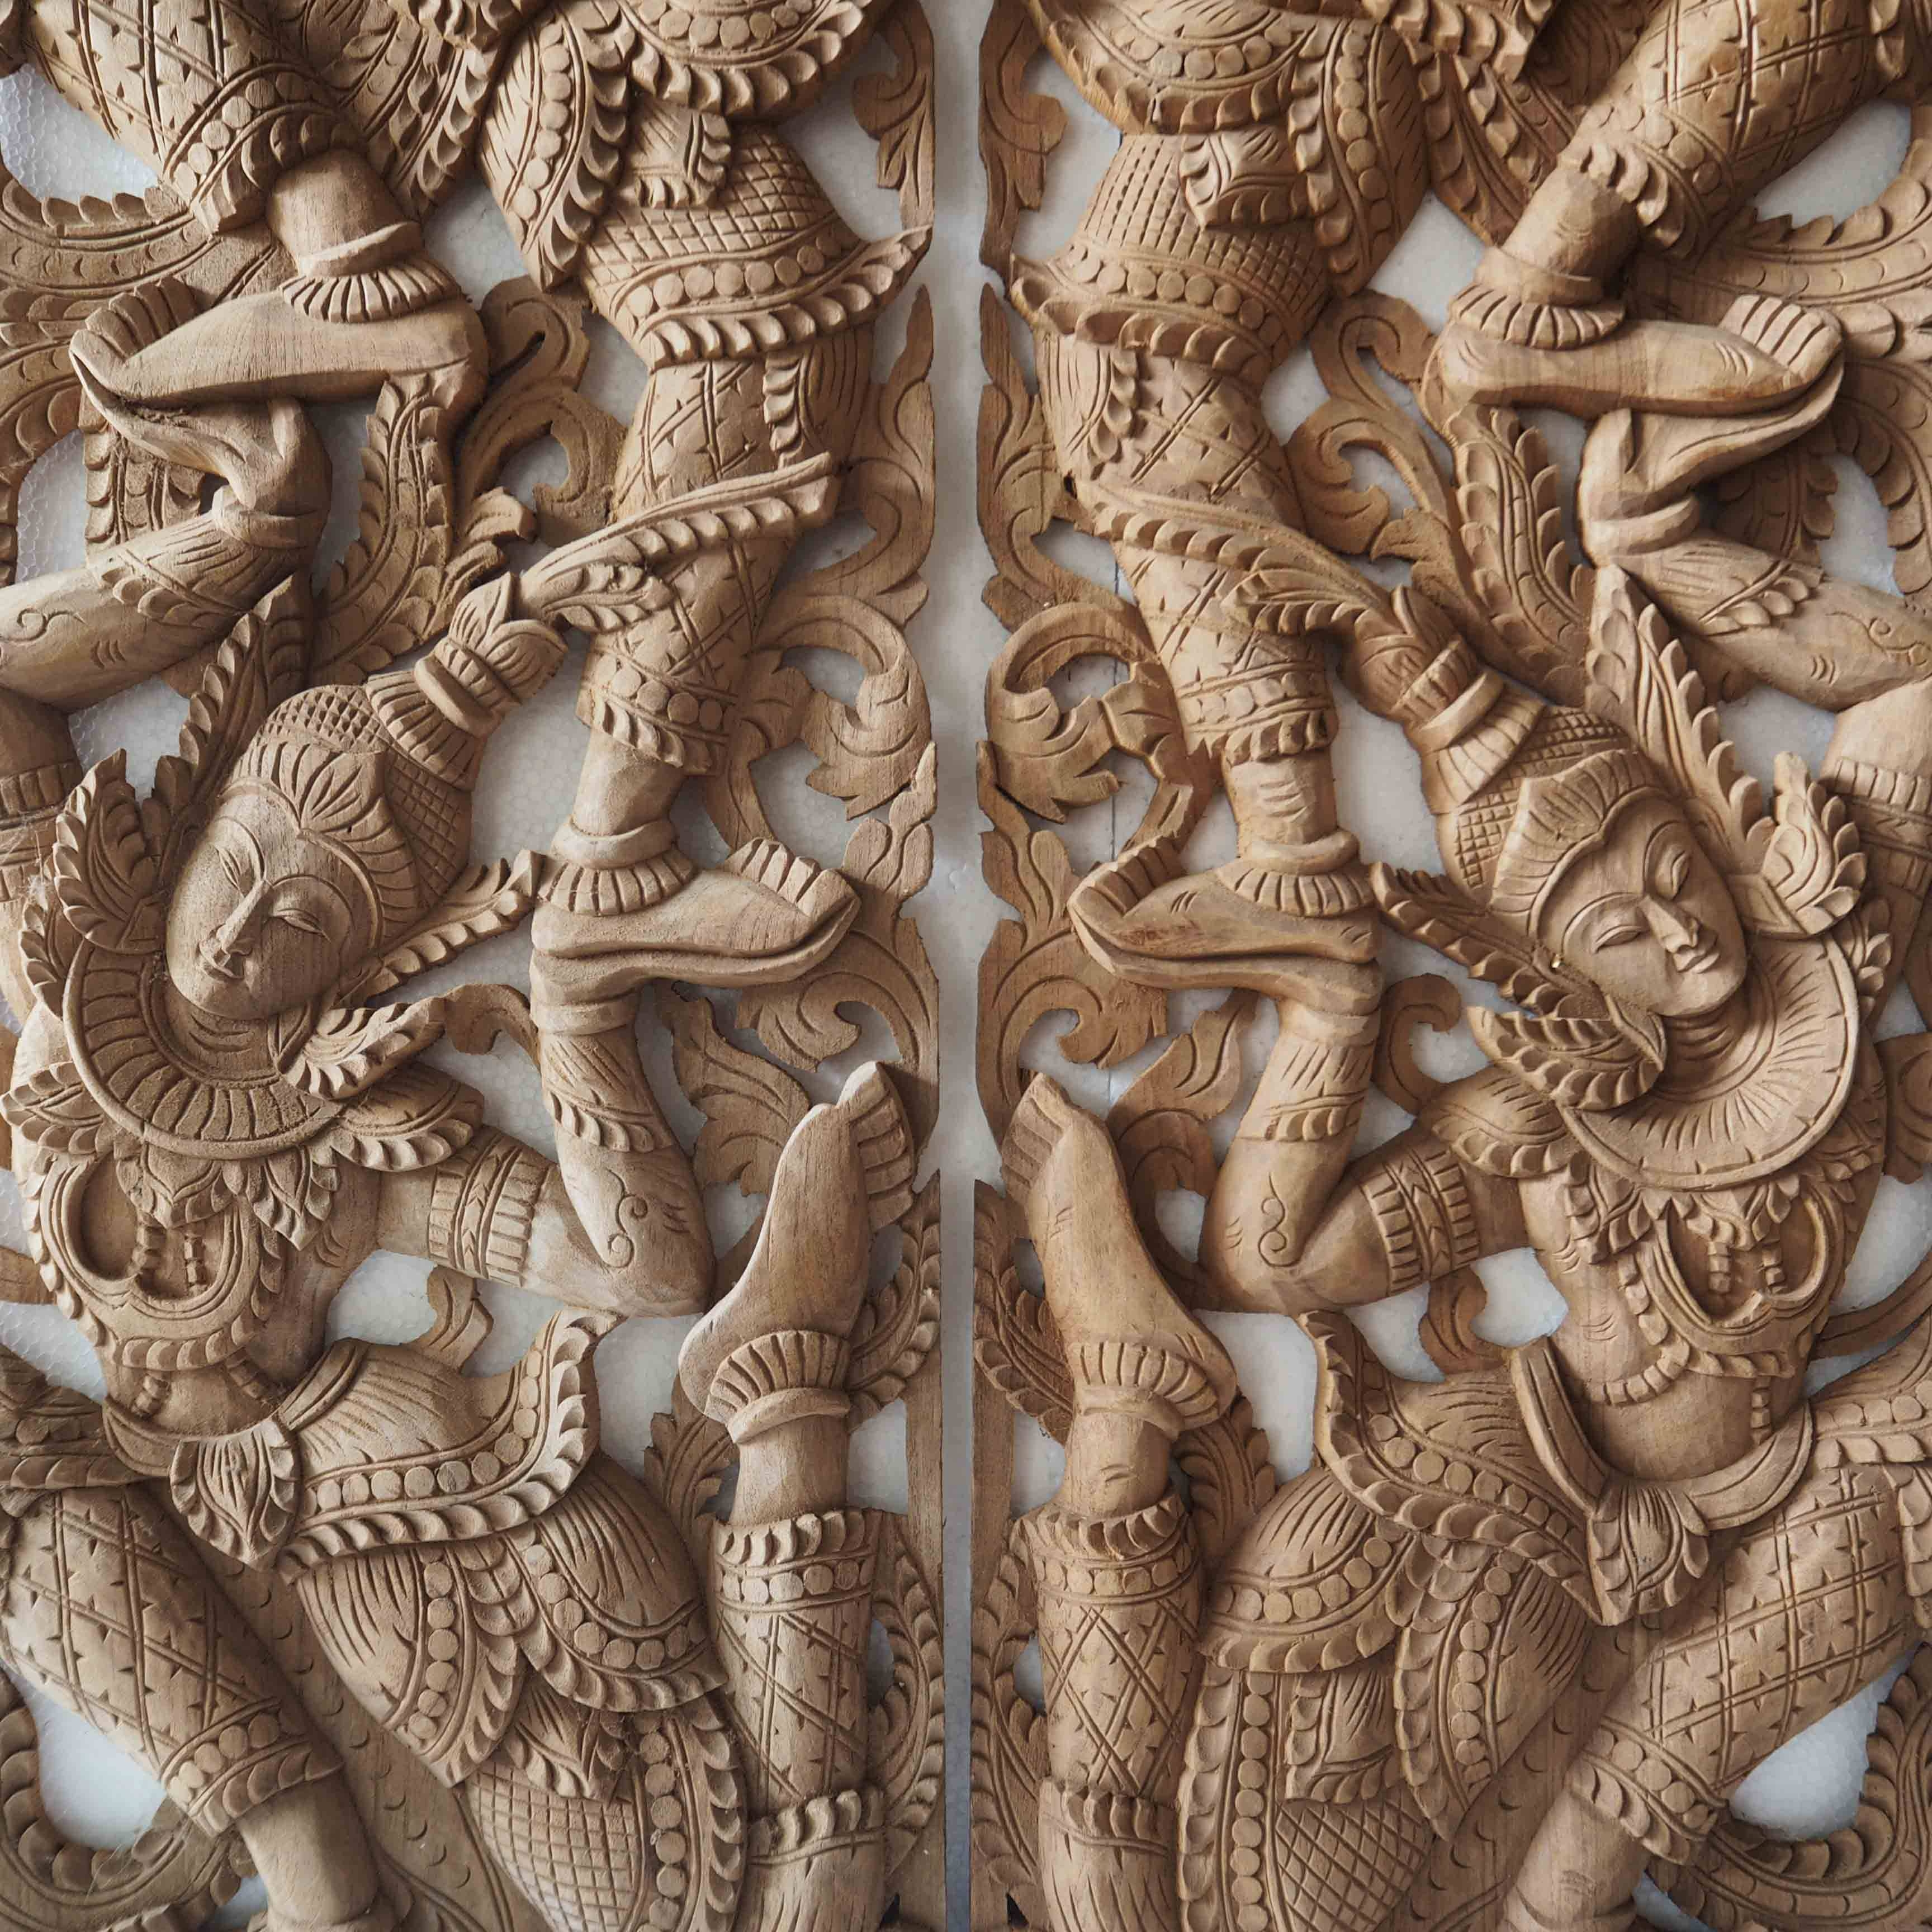 Pair Of Wooden Wall Art Panel From Thailand – Siam Sawadee Throughout Most Up To Date Asian Wall Art Panels (View 8 of 20)